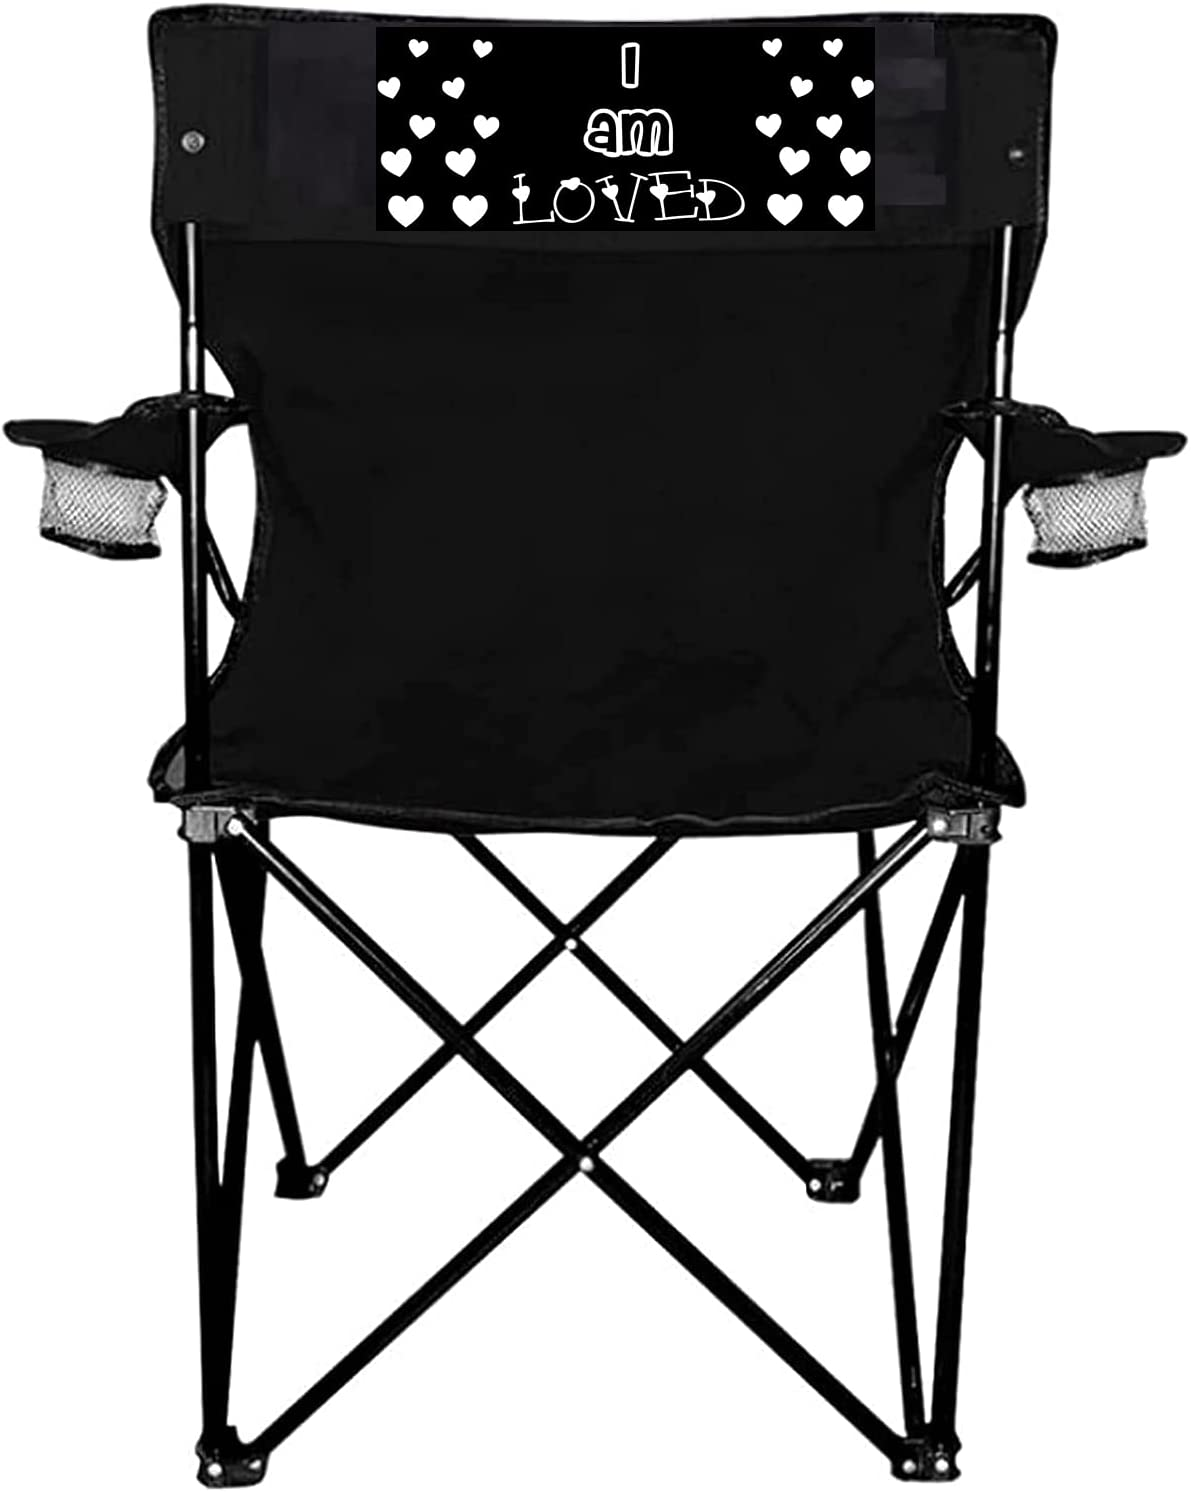 Free shipping VictoryStore Outdoor Camping Chair -